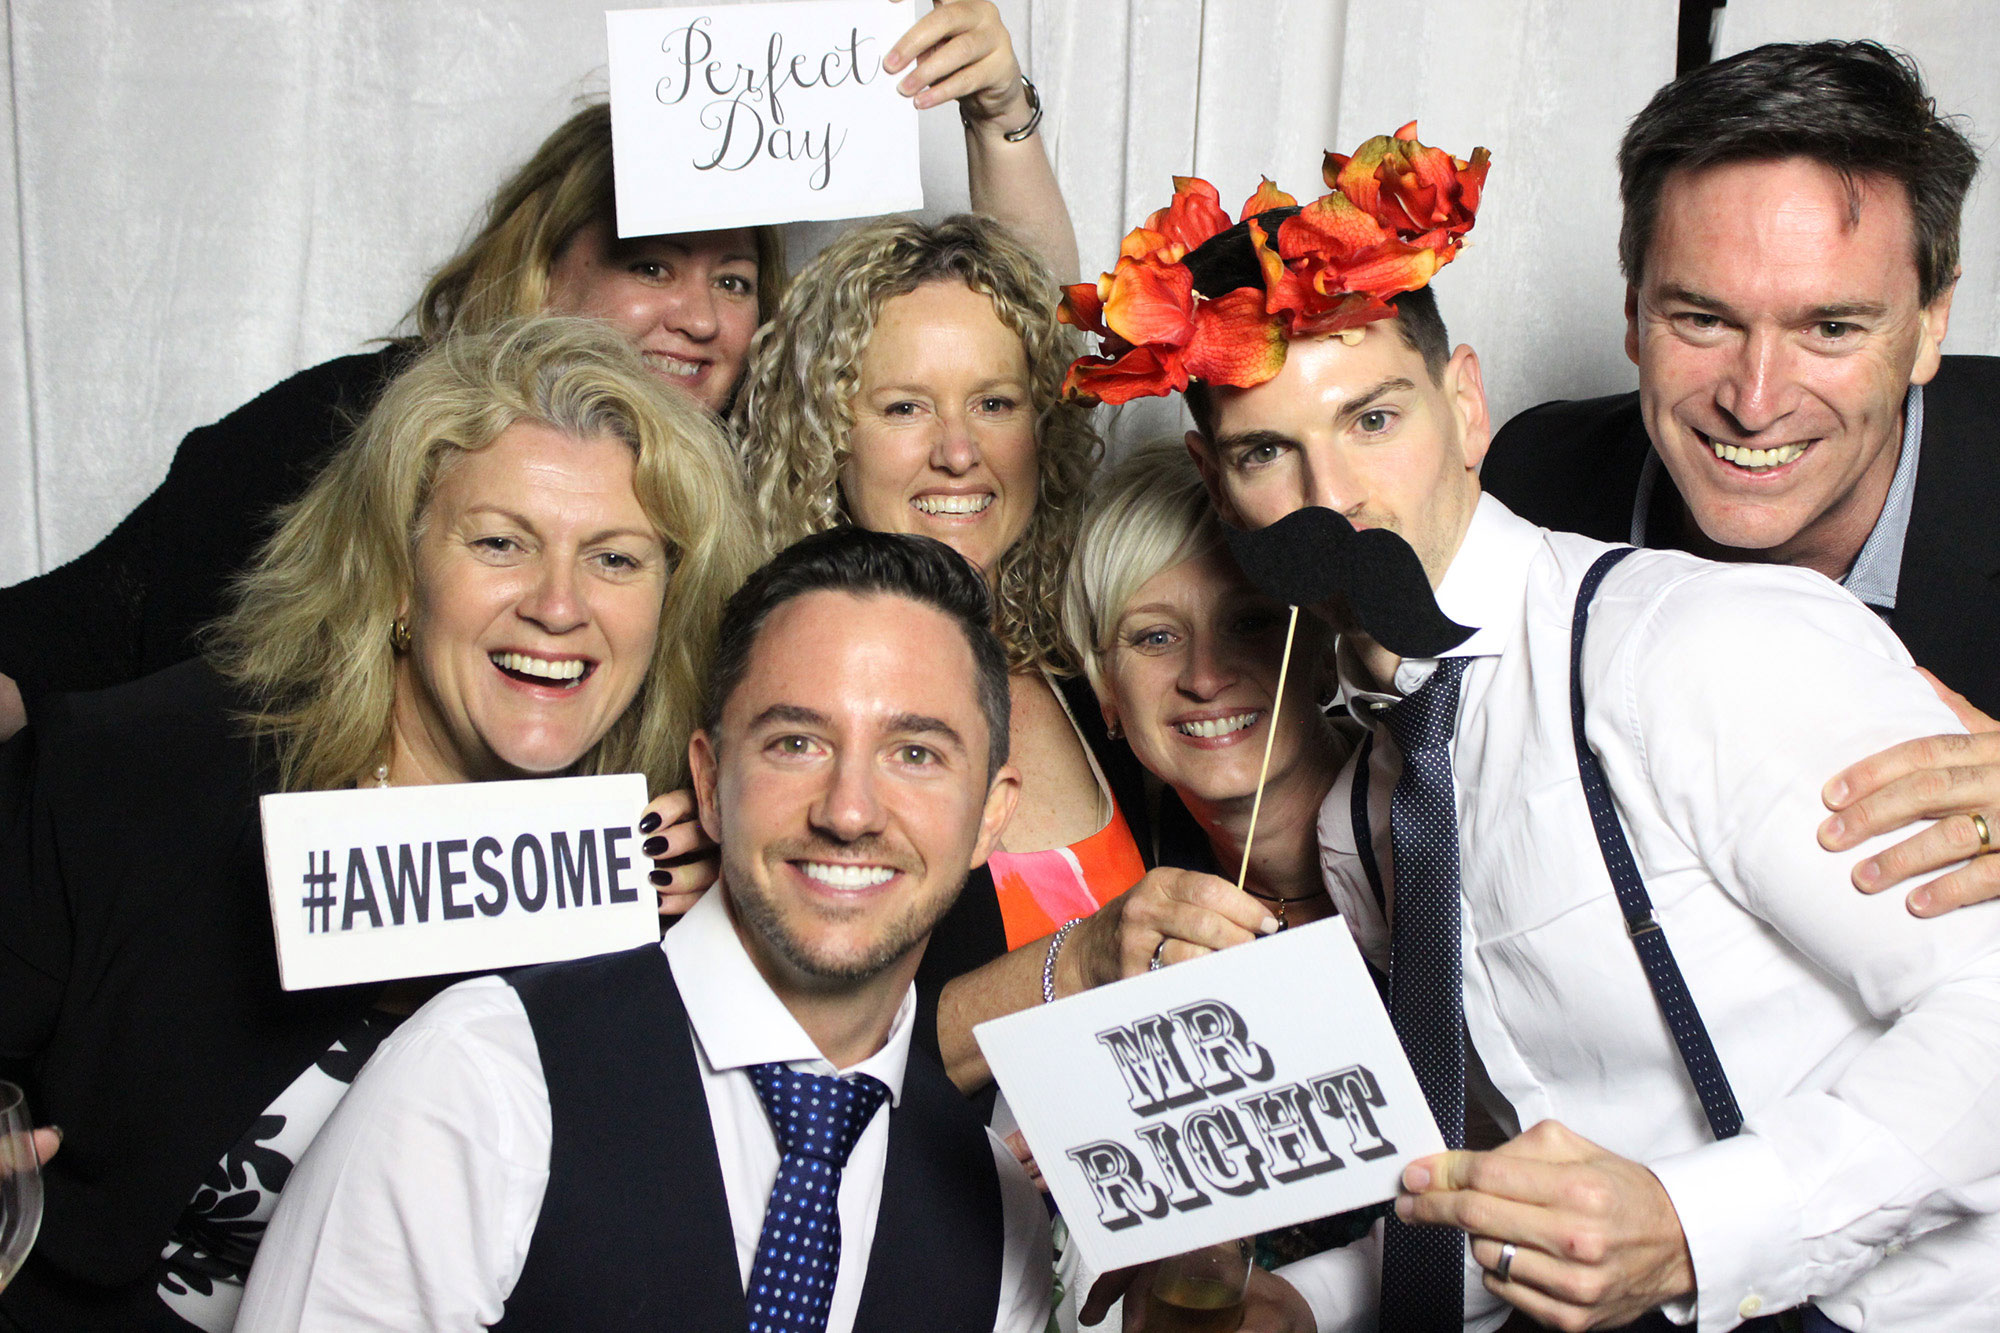 Wedding Photo Booth for Maximum Fun